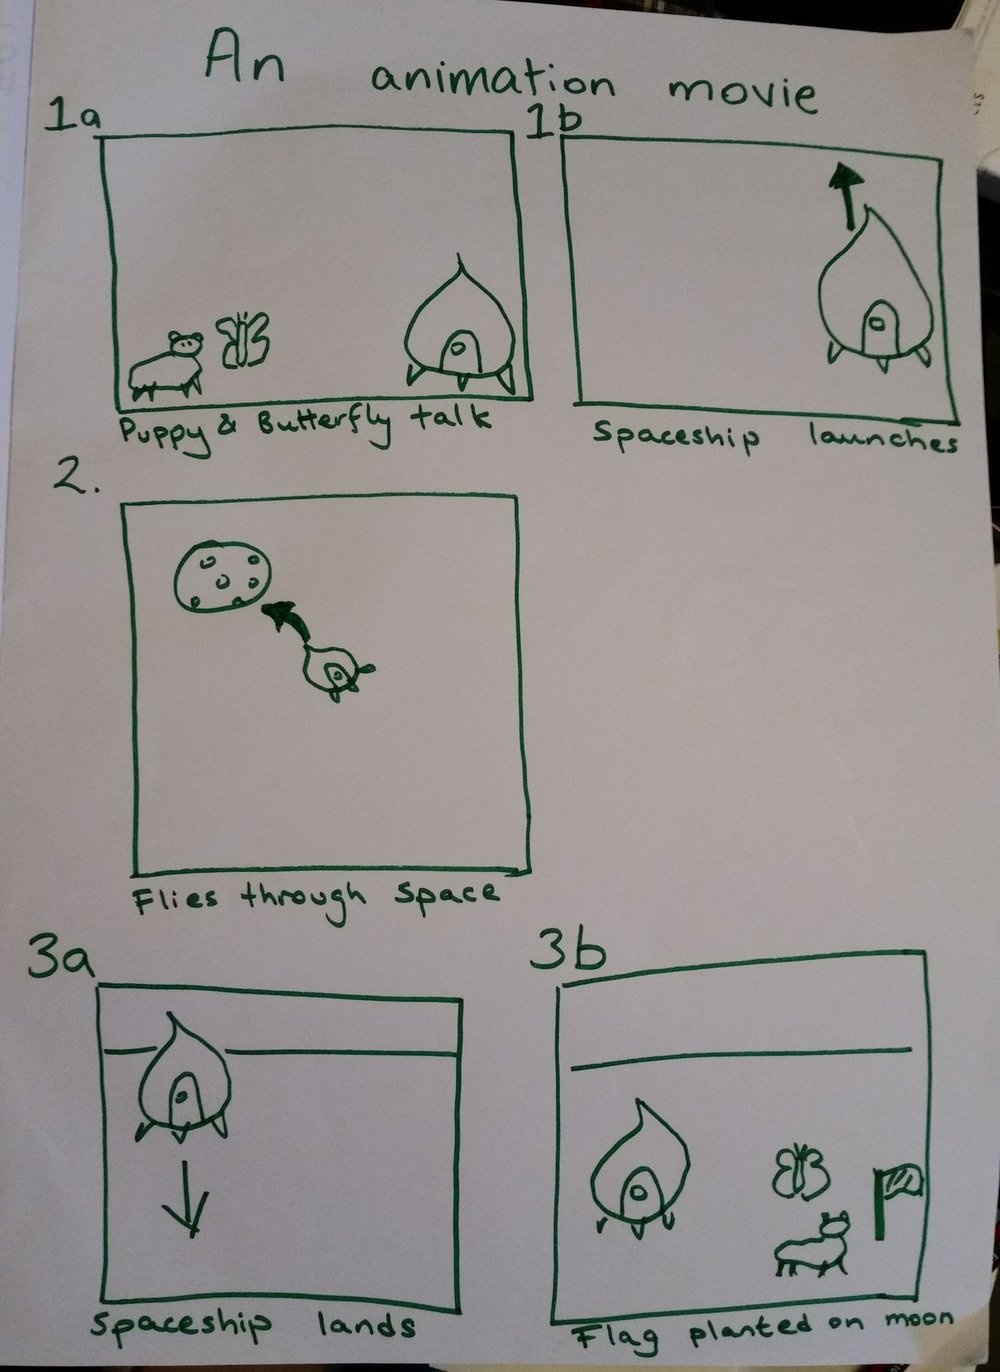 First make a storyboard, a sketch of all the scenes in your story in chronological order. This helps us to plan how we approach writing the code to create the animation movie.